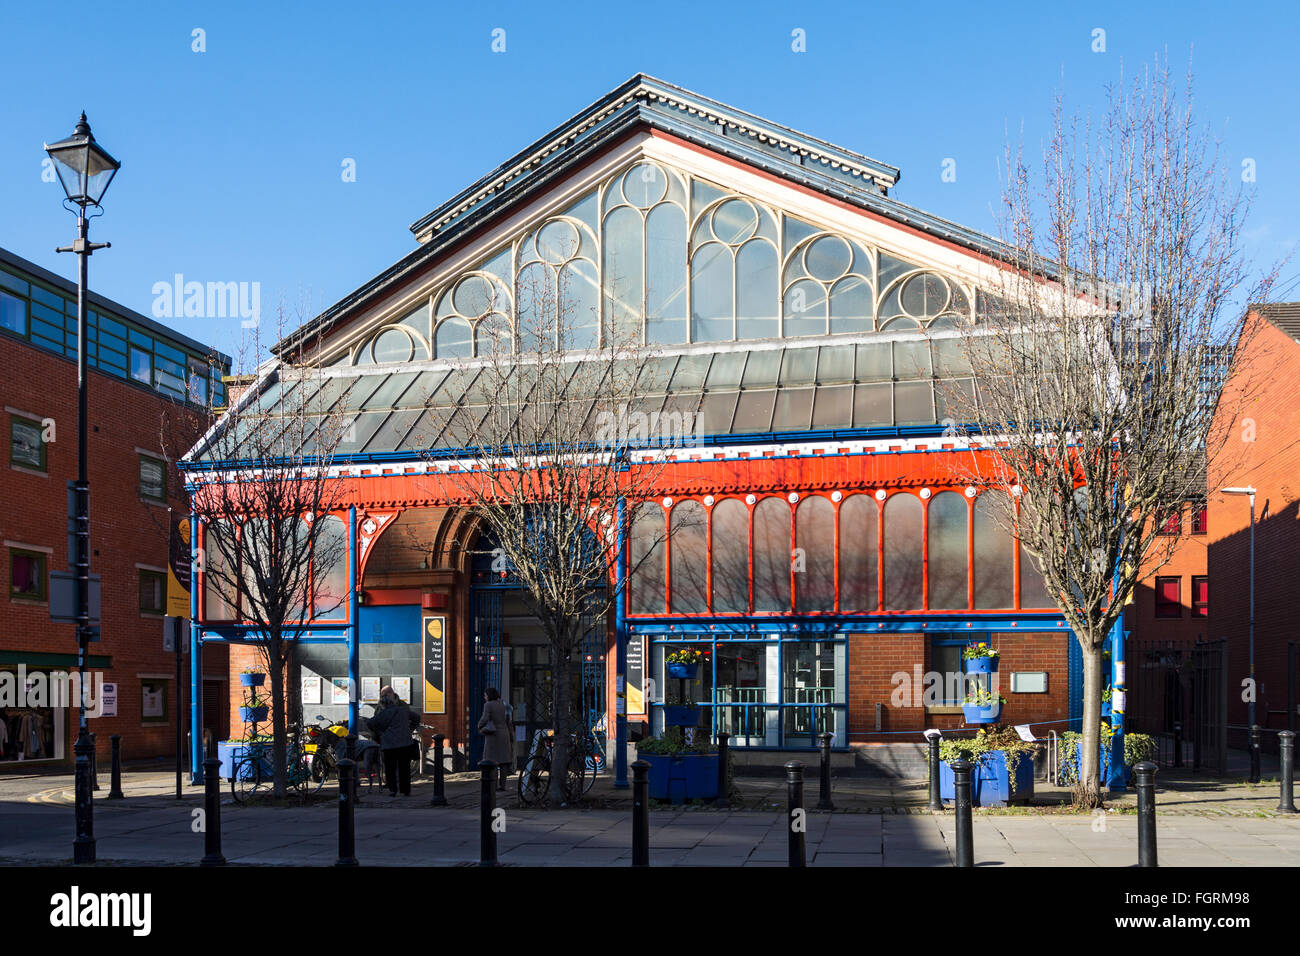 Manchester Craft and Design Centre, known as Manchester Craft Village, Oak Street, Northern Quarter, Manchester, - Stock Image